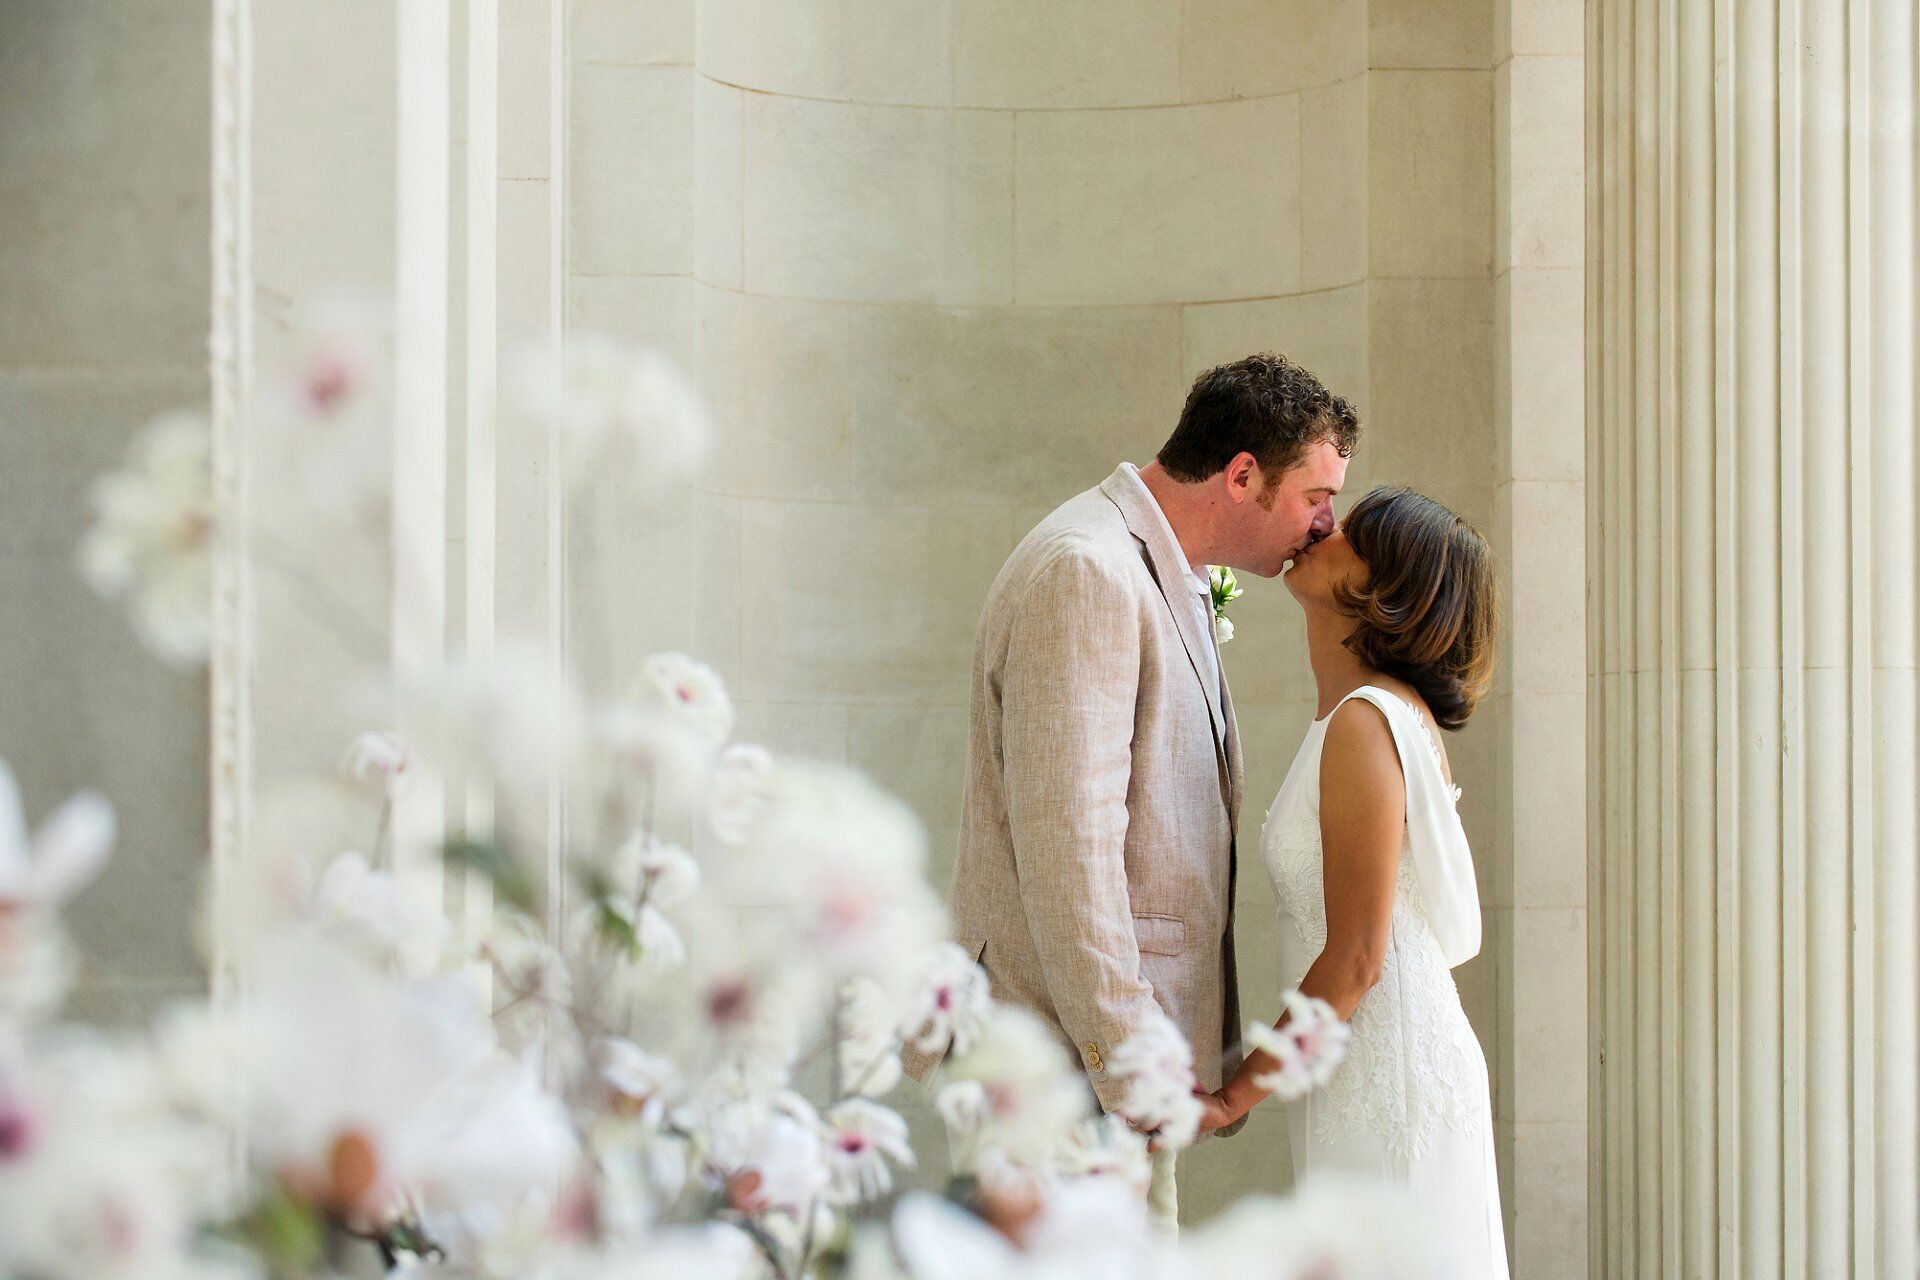 old marylebone town hall wedding photographer emma duggan captures a bride and groom kissing after their soho room world cup quarter final wedding